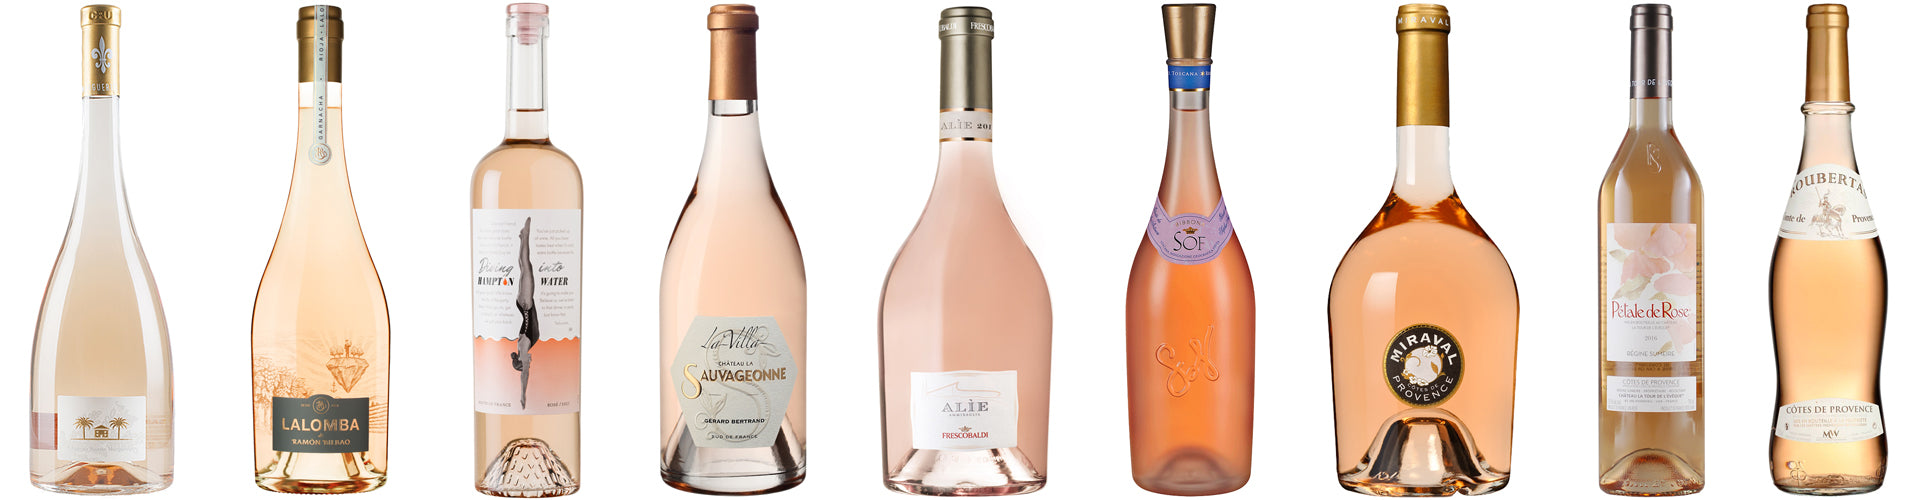 A Collection of Rosé Wine Bottles from Provence, Spain and Italy